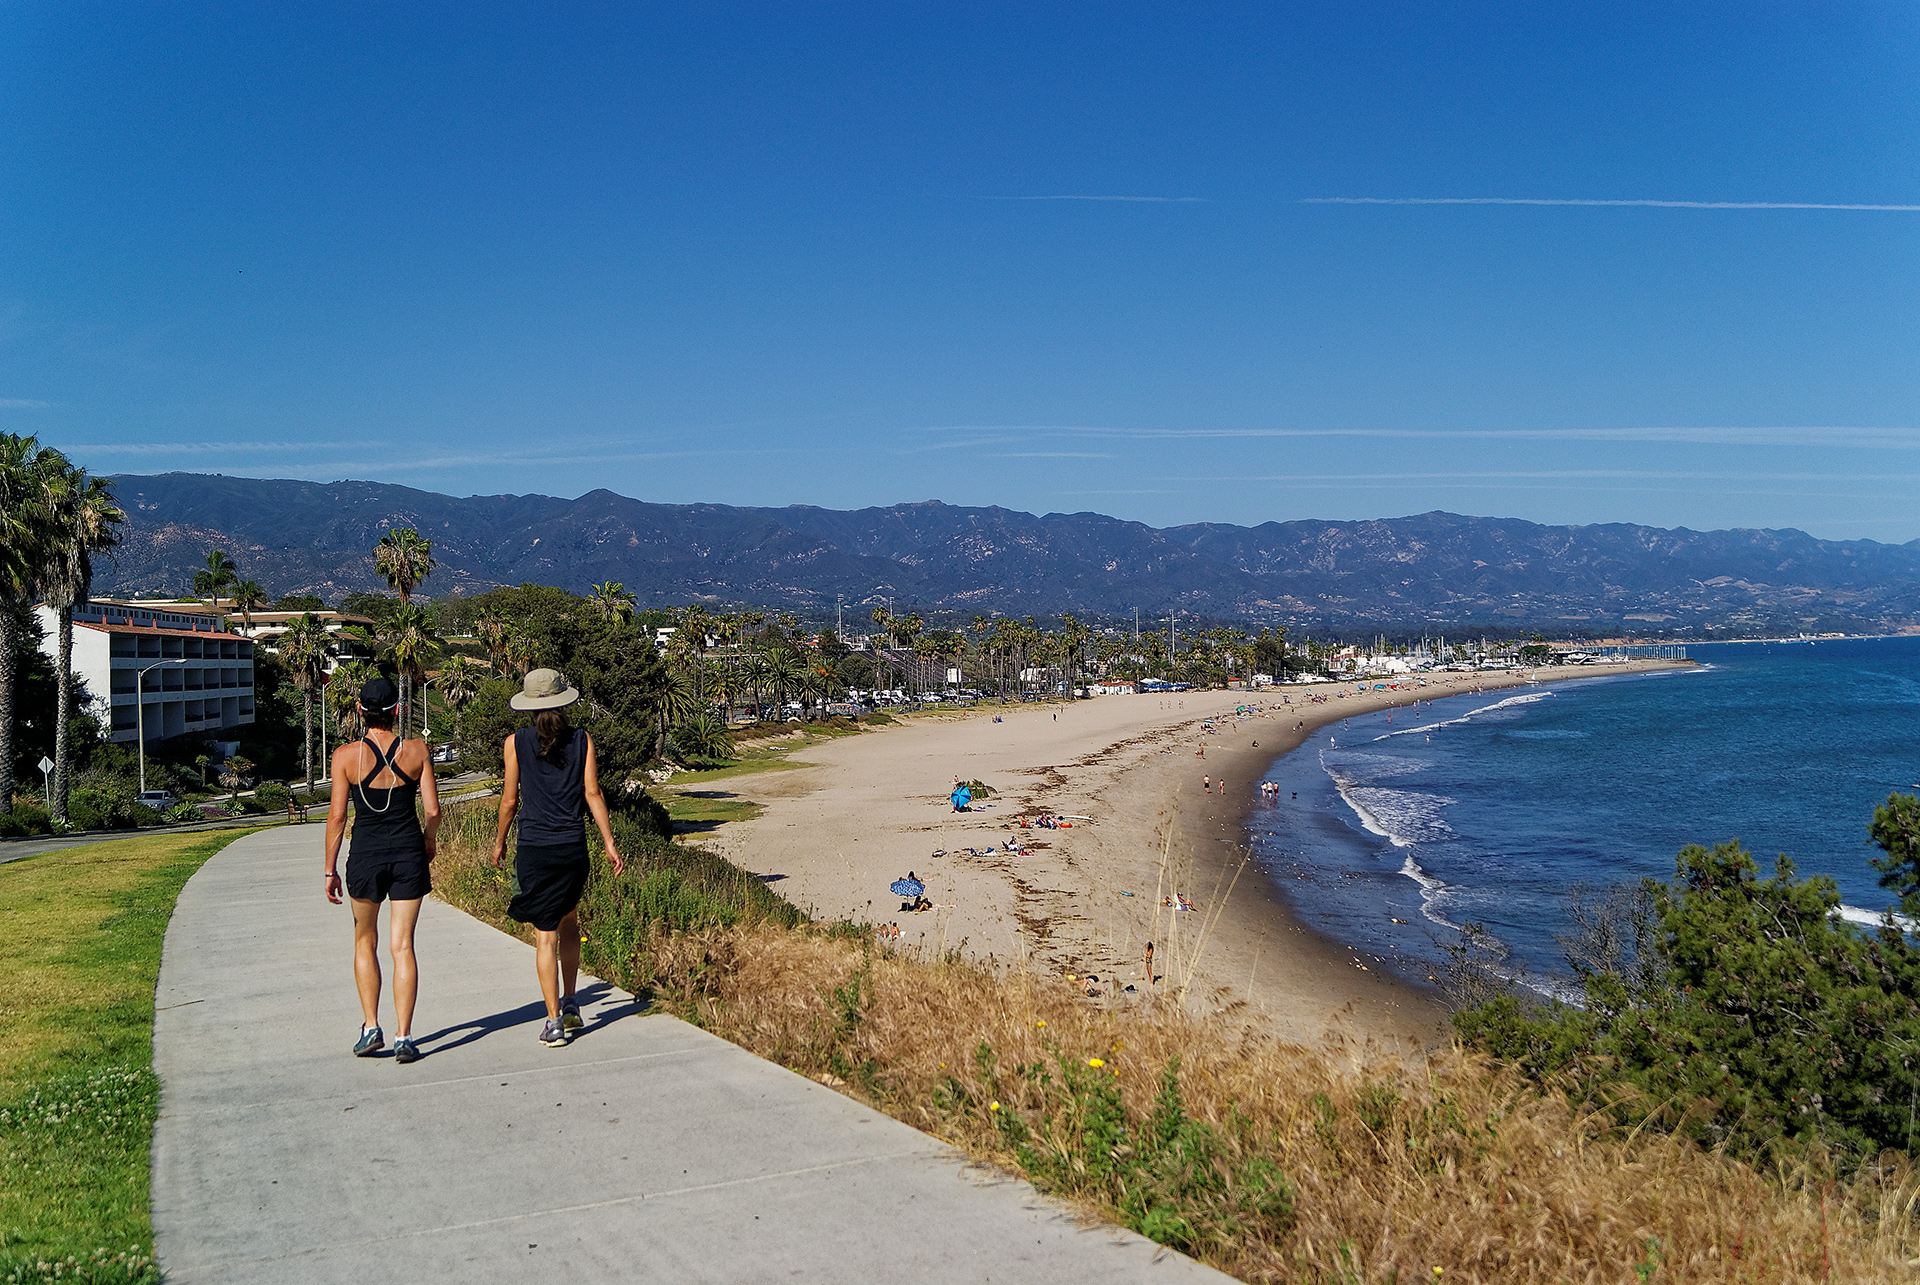 It s Easy to Get Around Car Free in Santa Barbara